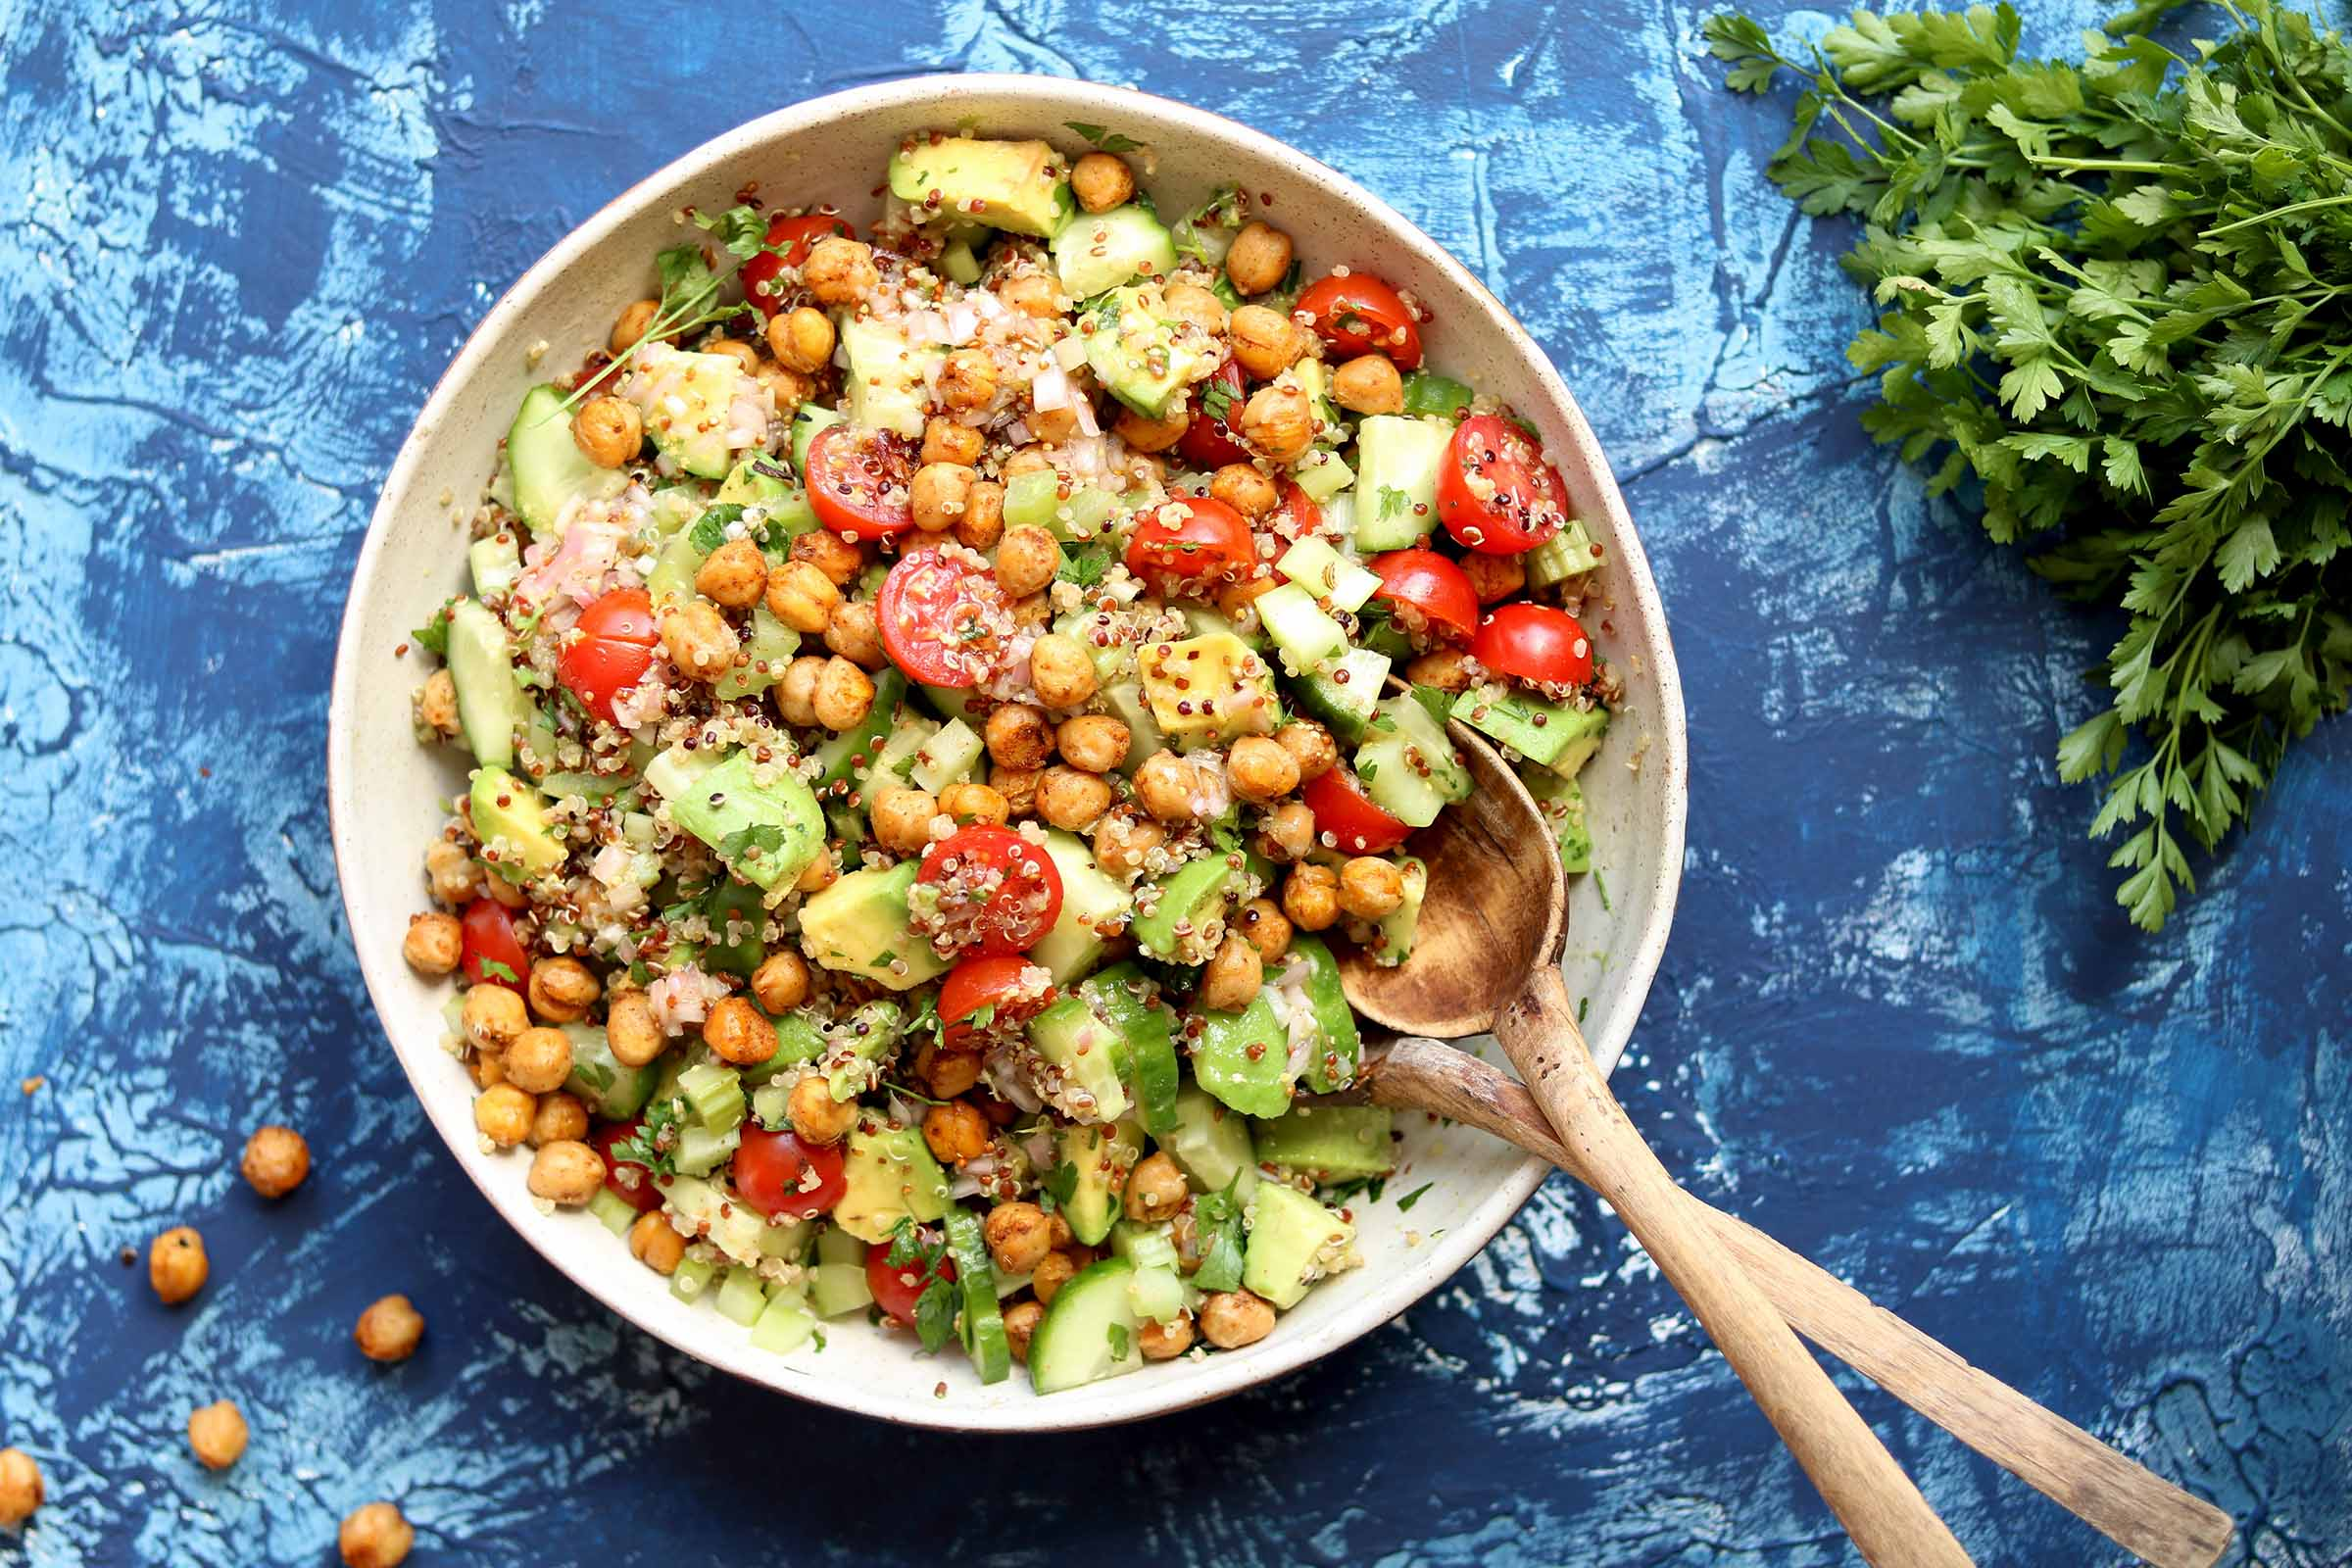 Avocado Quinoa Salad with Spiced Chickpeas